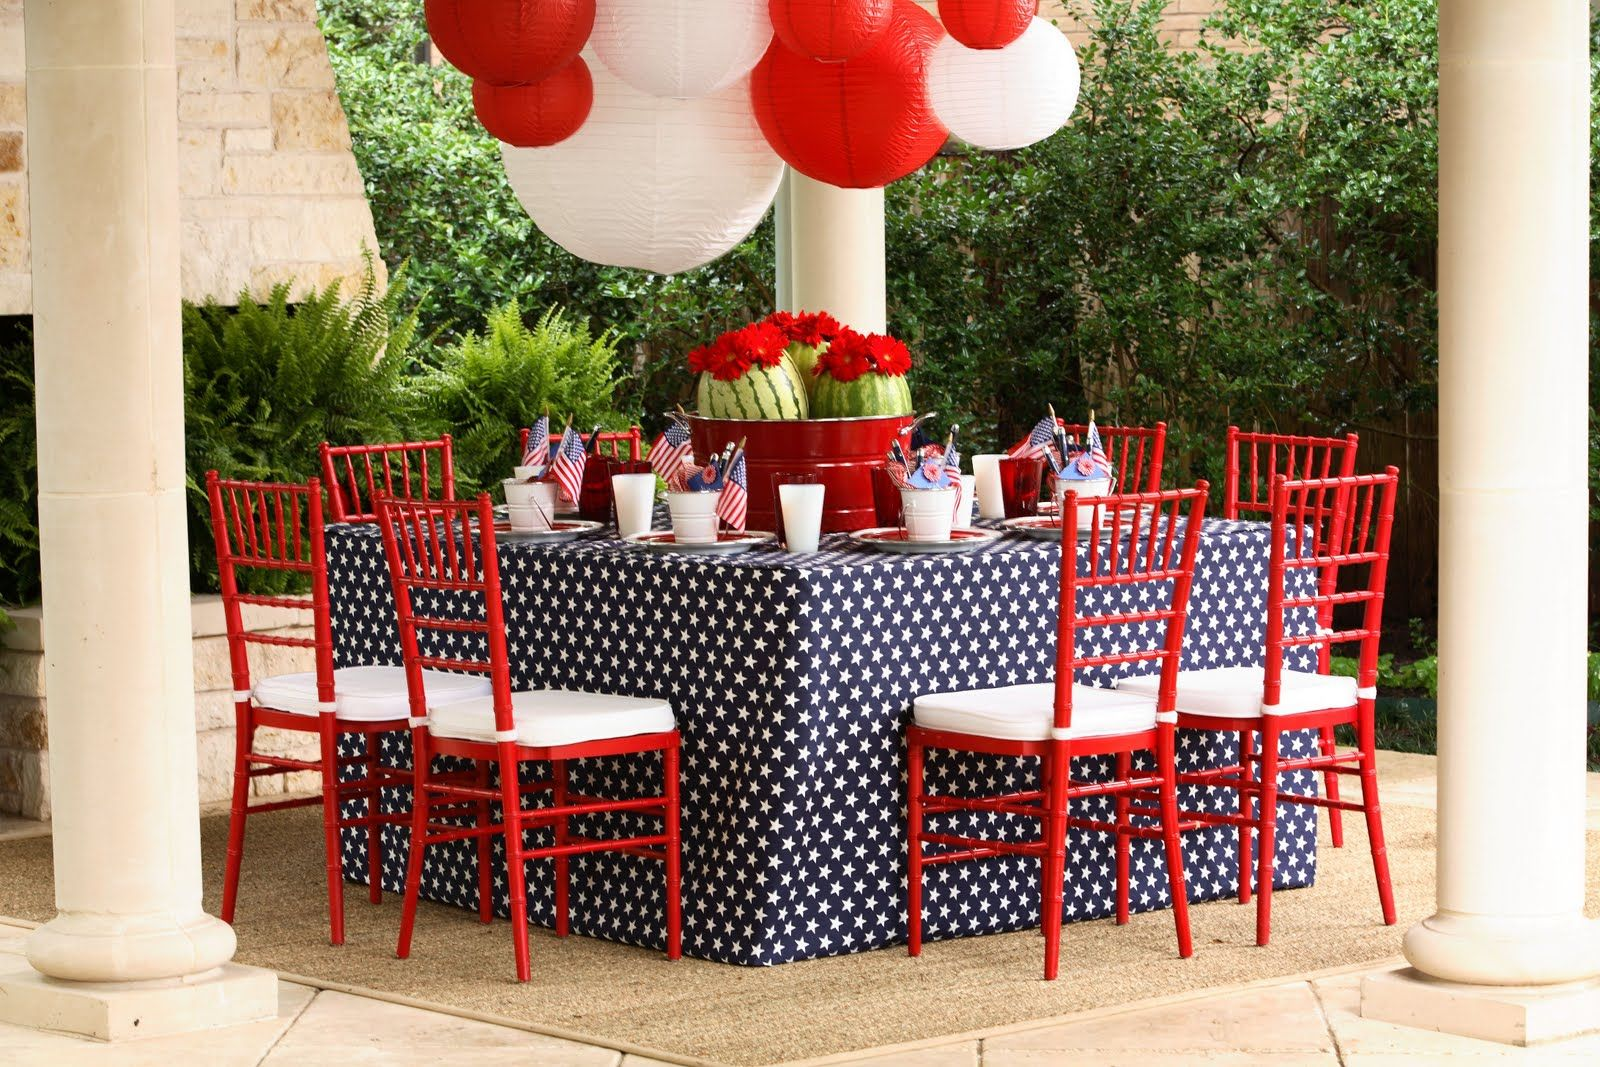 I Love The Square Table Floor Length Tablecloth Doubling Up Of Chairs And Paper Lantern Chandelier This Fourth July Look Is Extra Special